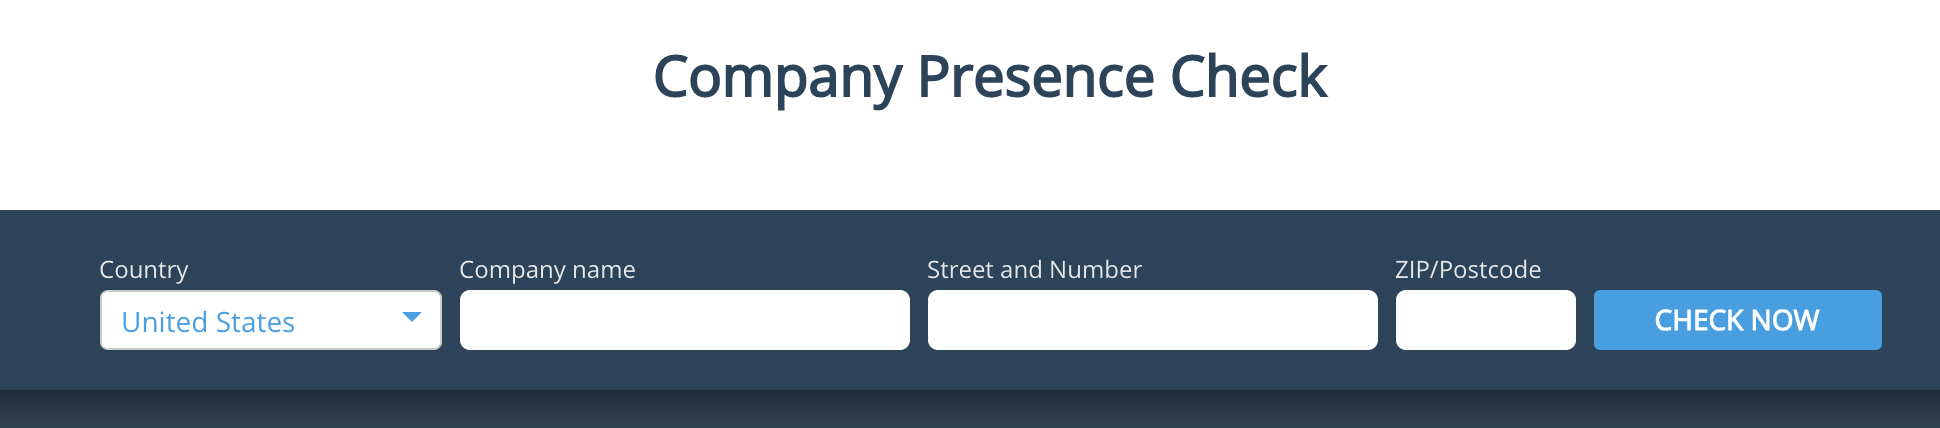 Online presence check tool